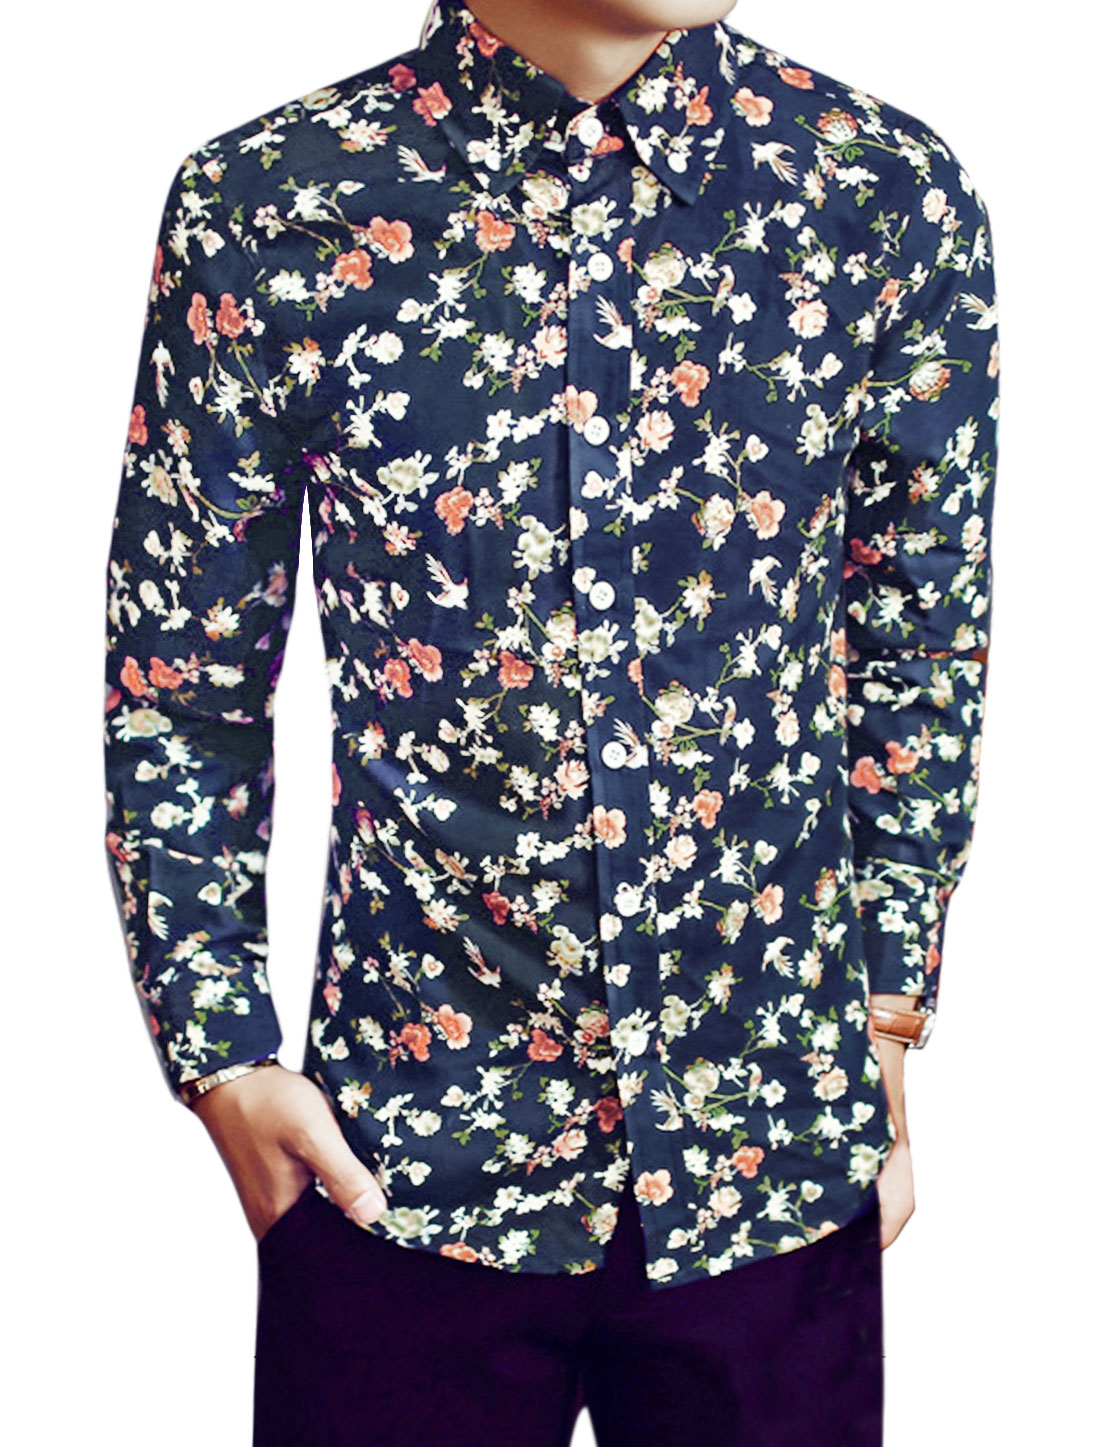 Men Floral Pattern Long Sleeves Slim Fit Full Button Casual Shirts Blue M